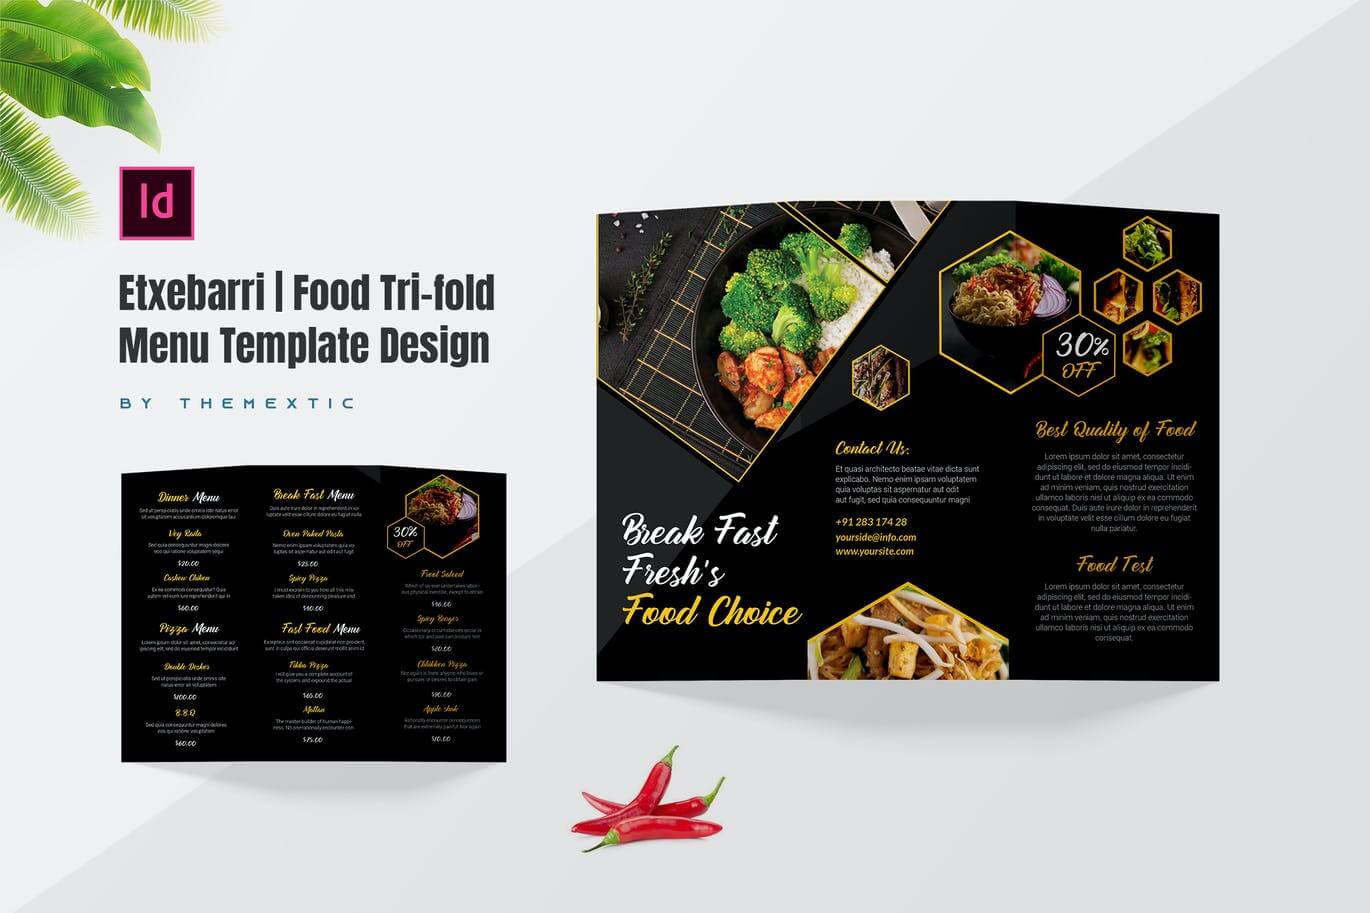 Etxebarri Food Tri-fold Menu Template Design (1)